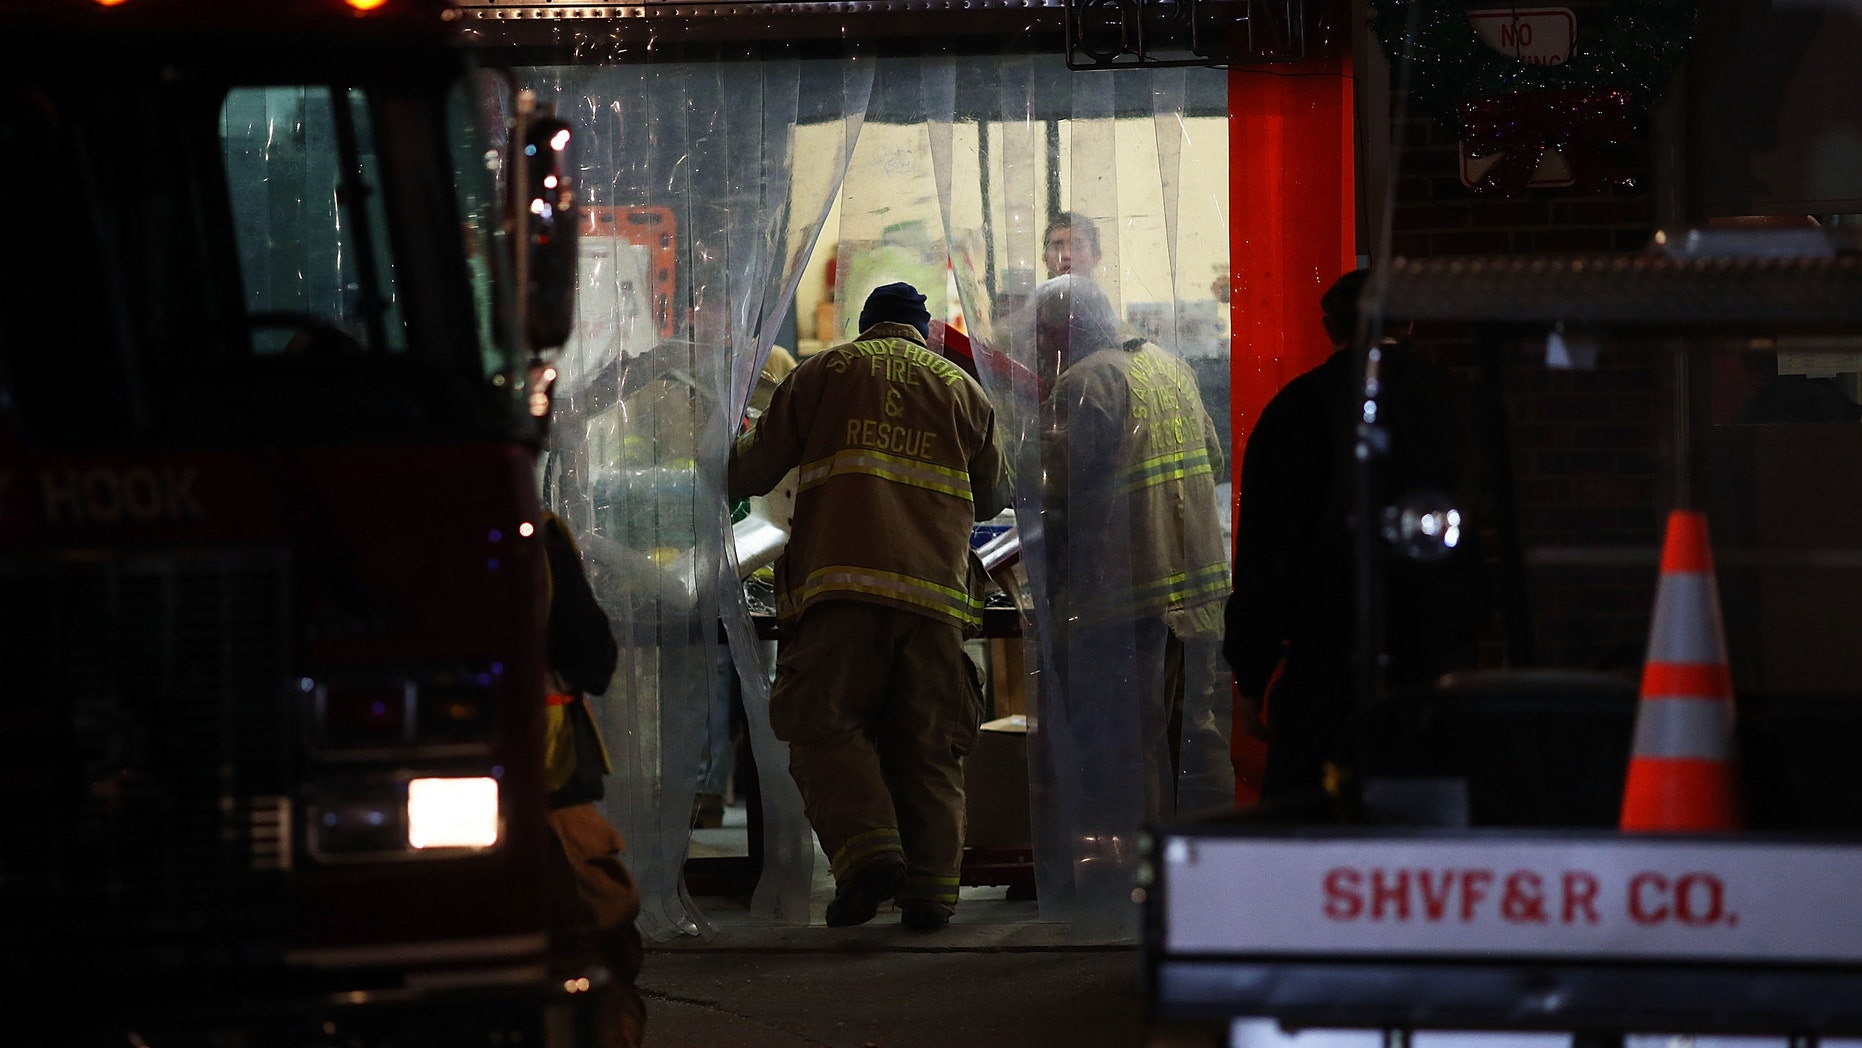 NEWTOWN, CT - DECEMBER 14:  A firefighter from the Sandy Hook Fire and Rescue walks into the firehouse near the Sandy Hook School on December 14, 2012 in Newtown, Connecticut. Twenty-seven are dead, including 20 children, after a gunman identified as Adam Lanza in news reports, opened fire in the school. Lanza also reportedly died at the scene. (Photo by Spencer Platt/Getty Images)